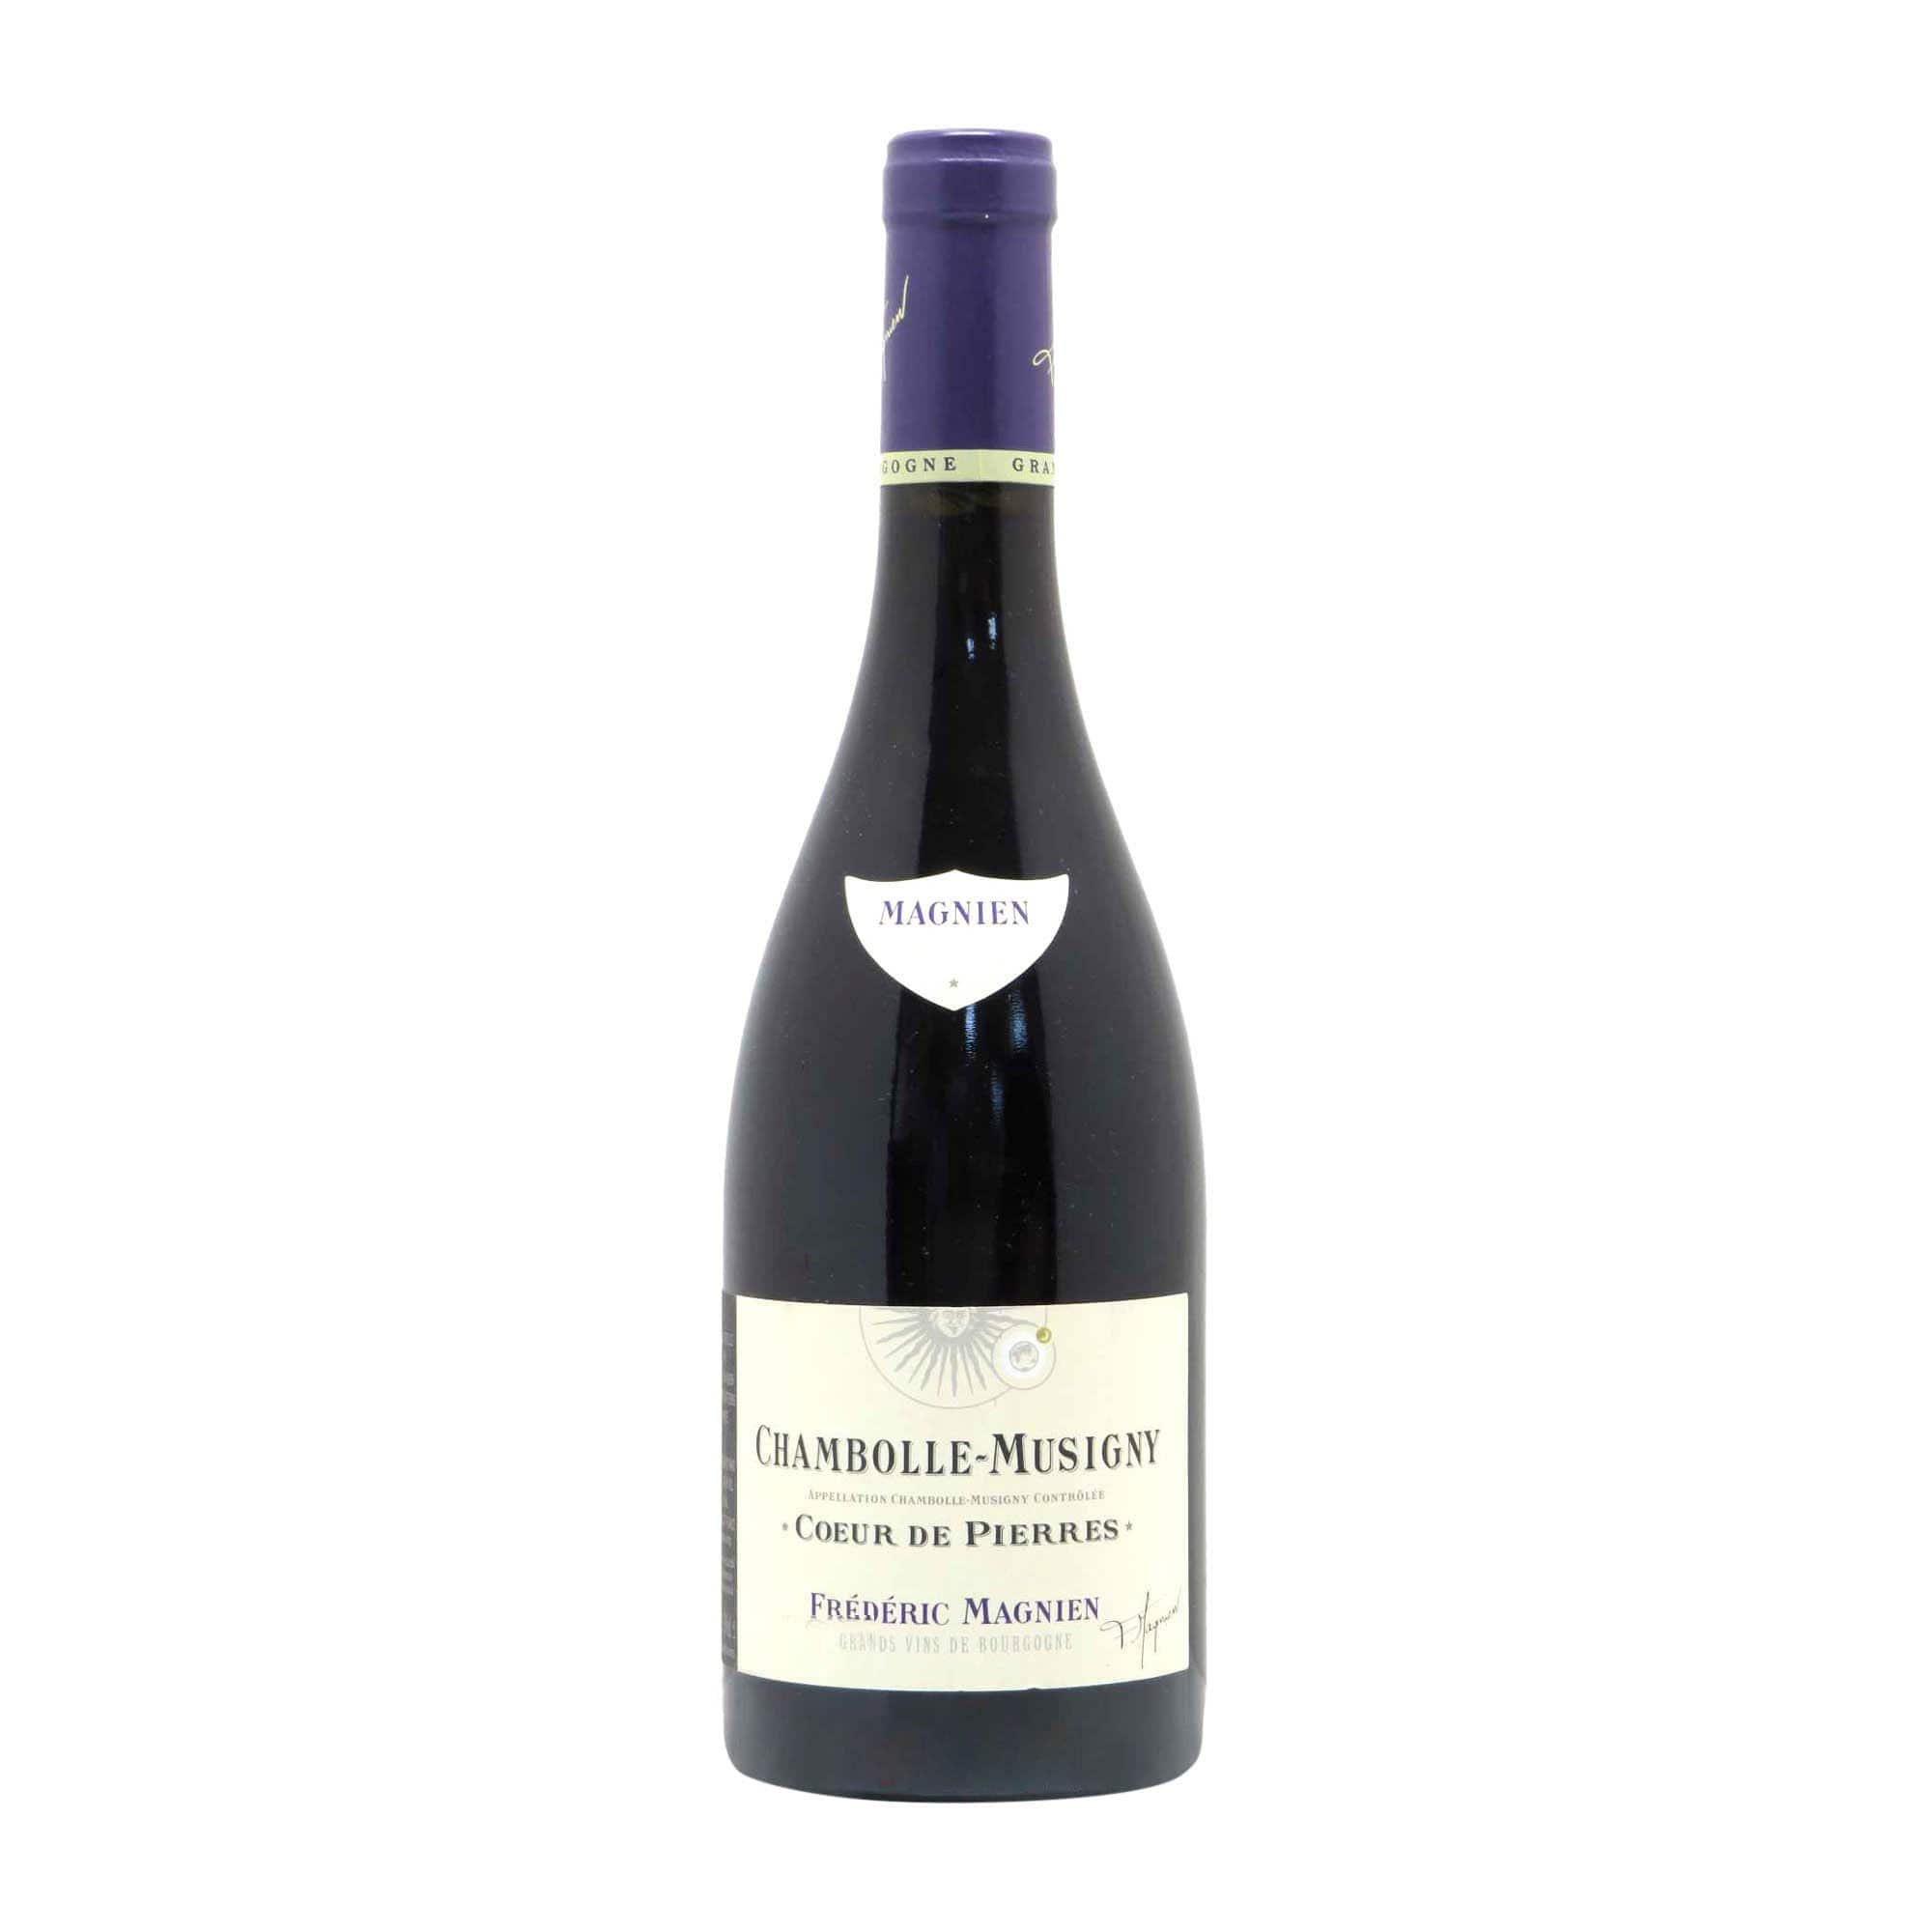 Red Wine Chambolle-Musigny 'Coeur de Pierres' Frédéric Magnien 2012